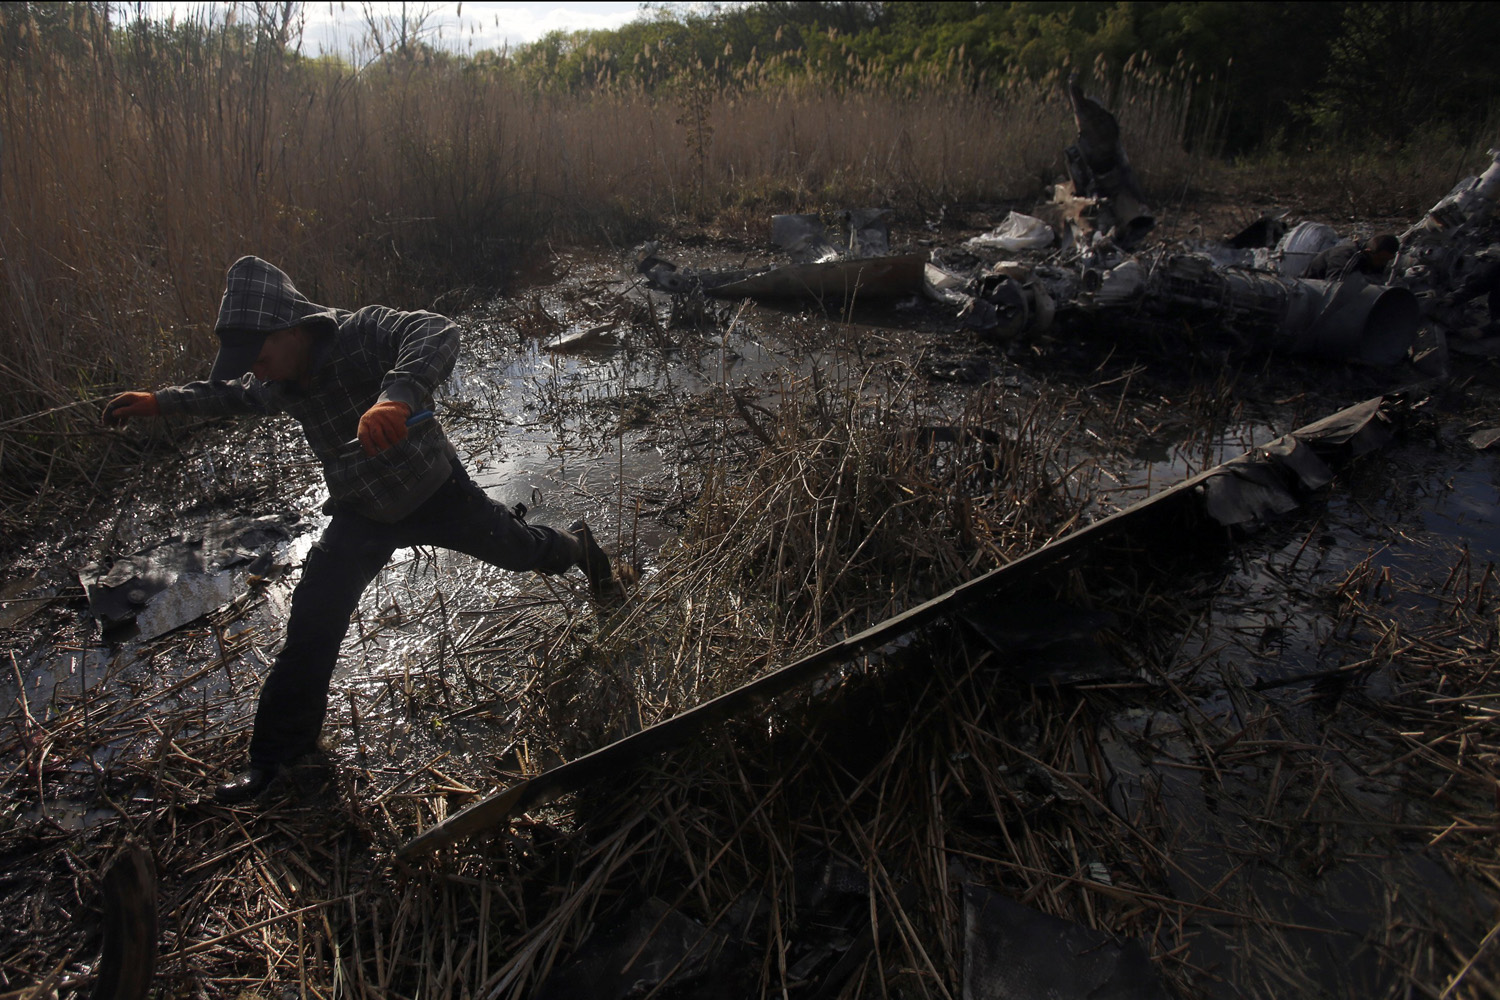 May 6, 2014. Local citizens collect parts of a downed Ukrainian military helicopter near the small town Raigorodok, outside Slovyansk, Ukraine.